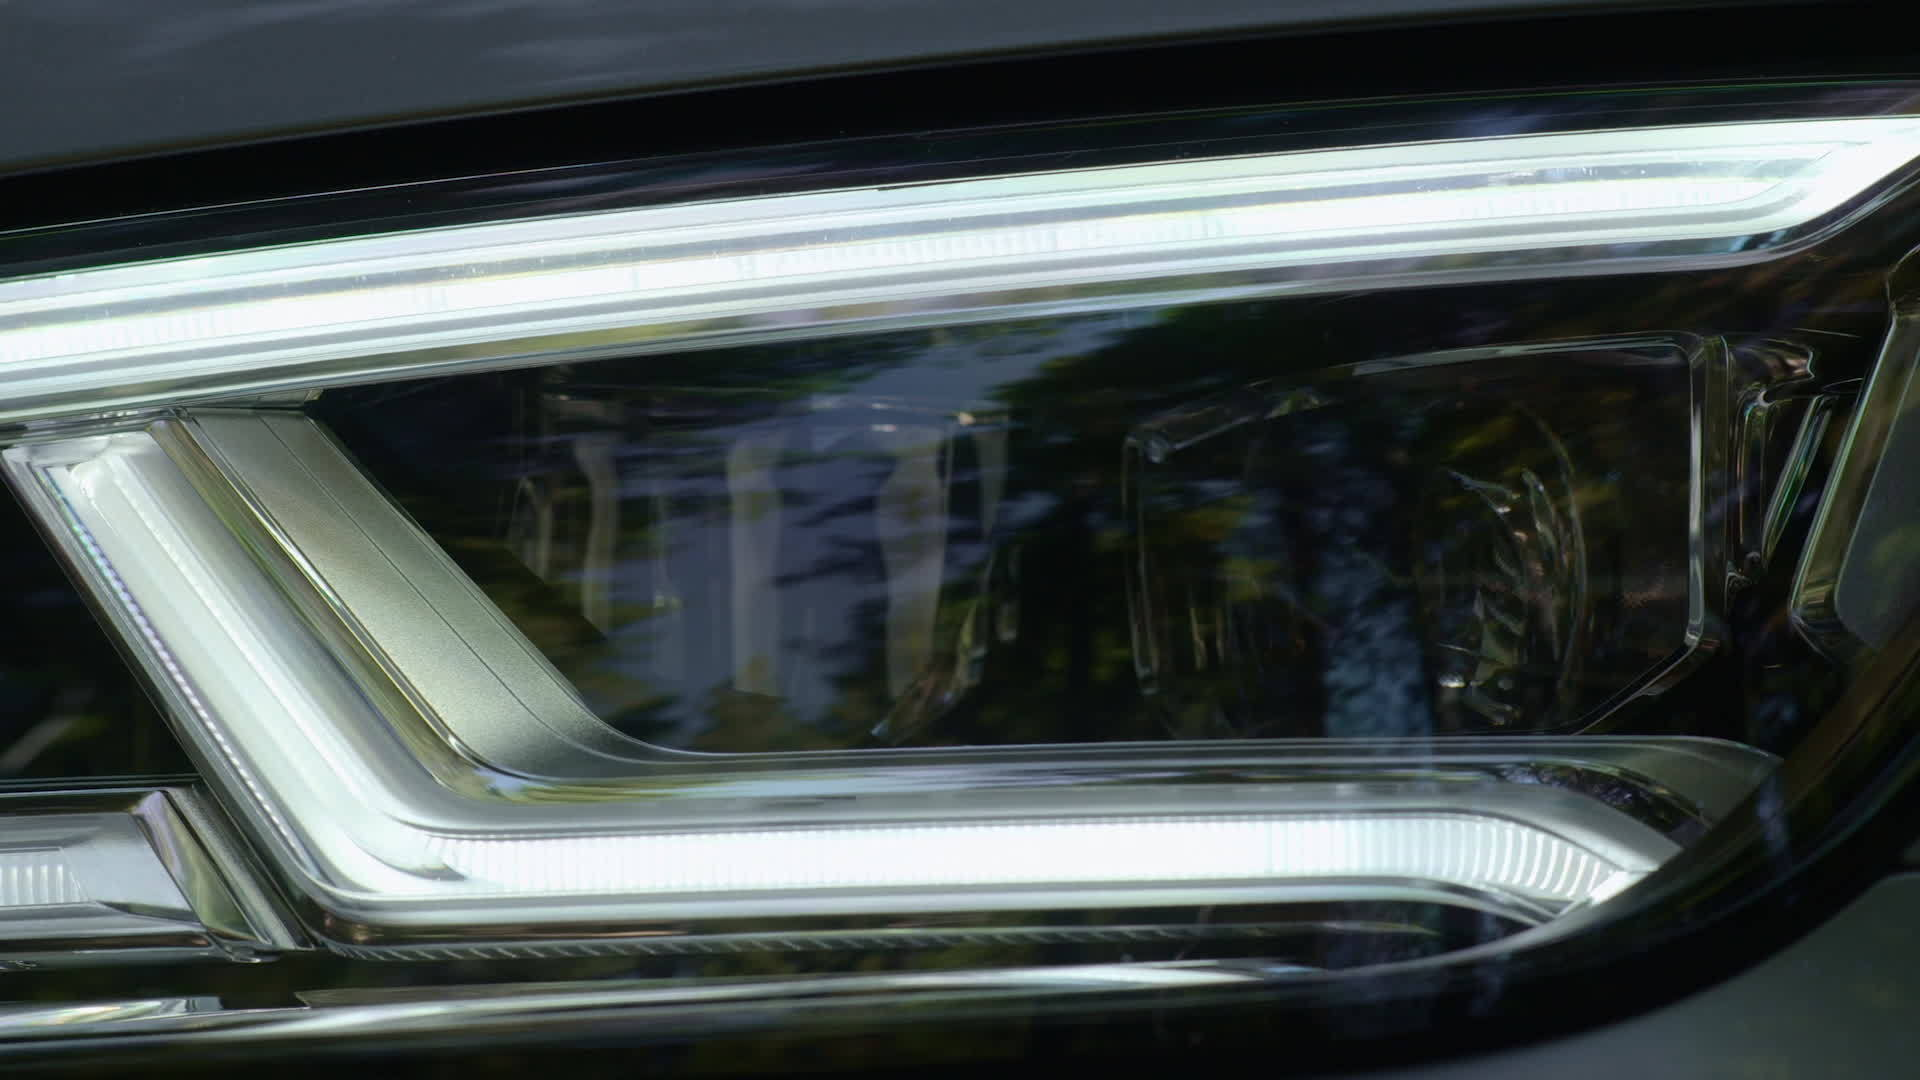 Audi Q5 relies on newest lighting technology